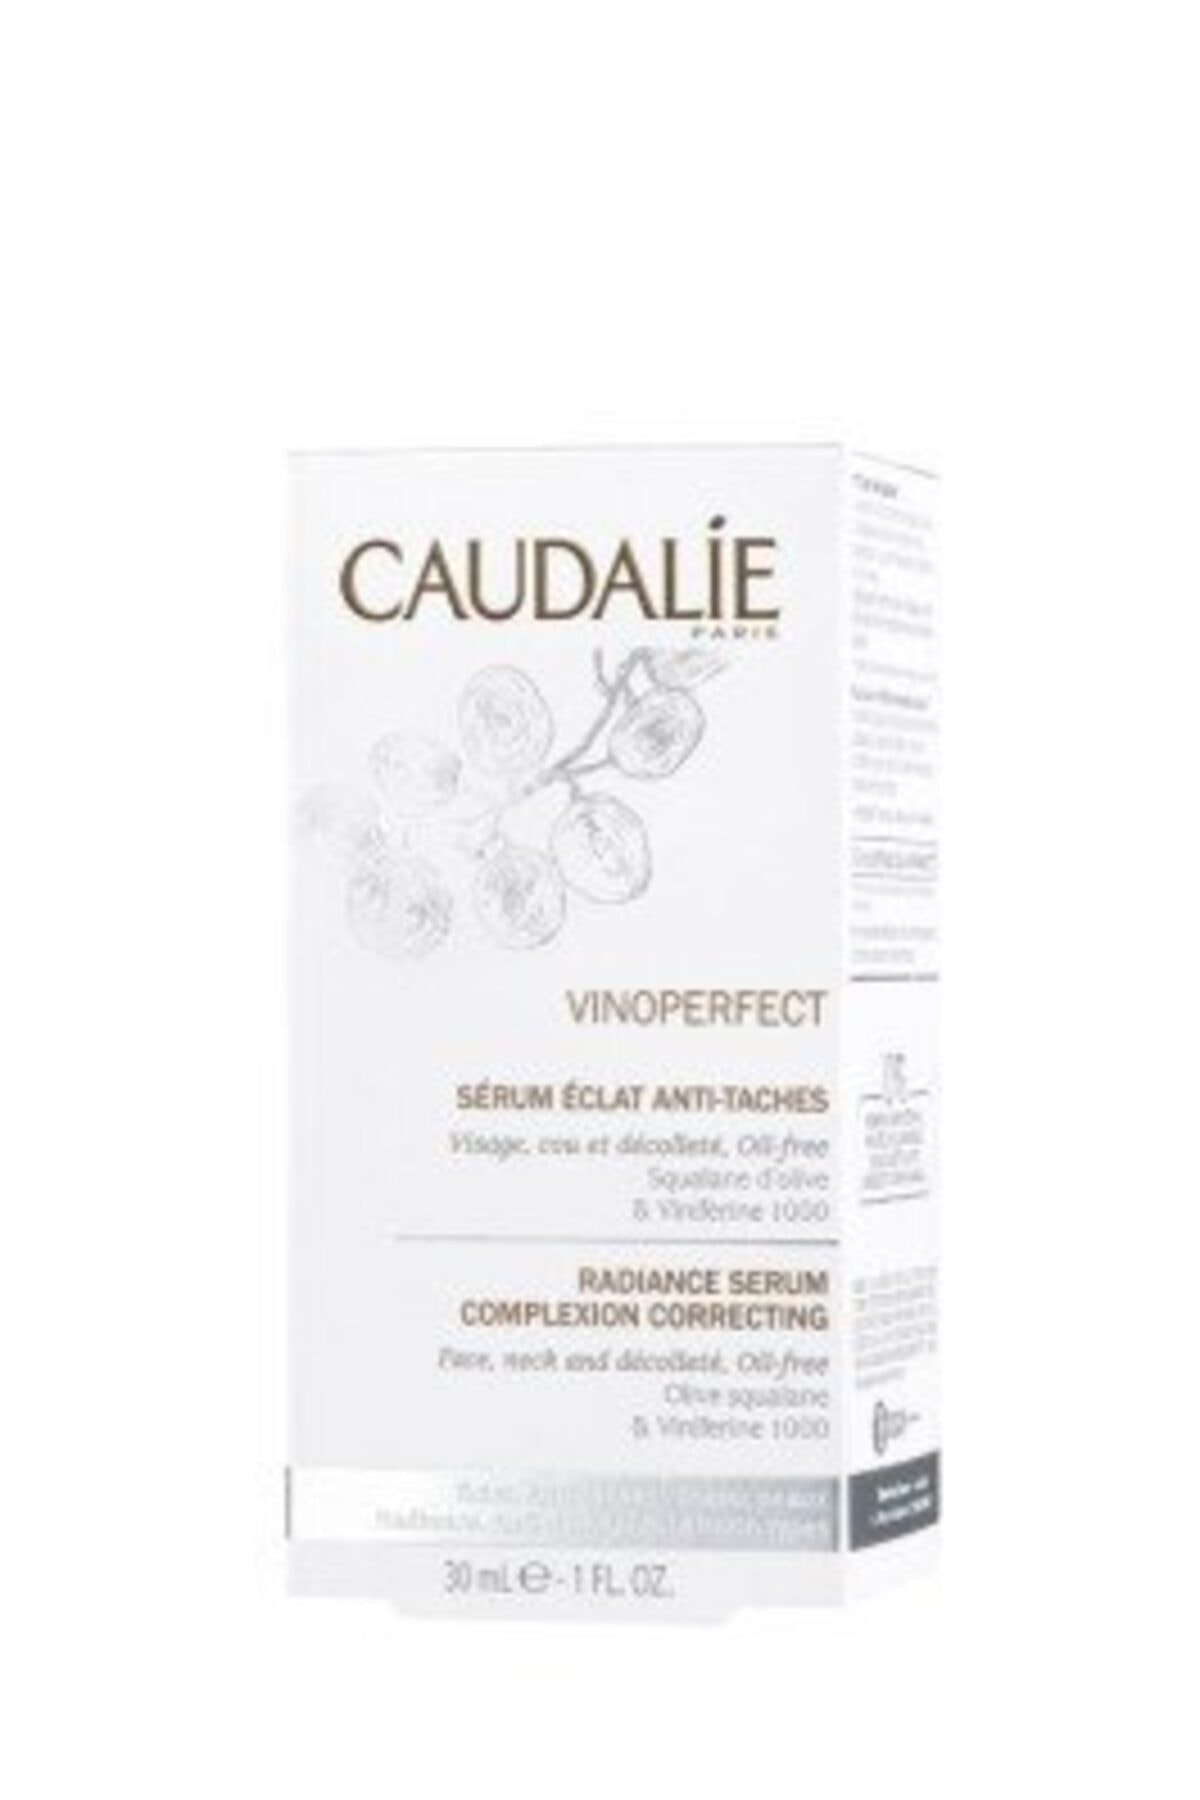 Caudalie Cilt Serumu - Vinoperfect Radiance Serum 30 ml 3522930000419 1